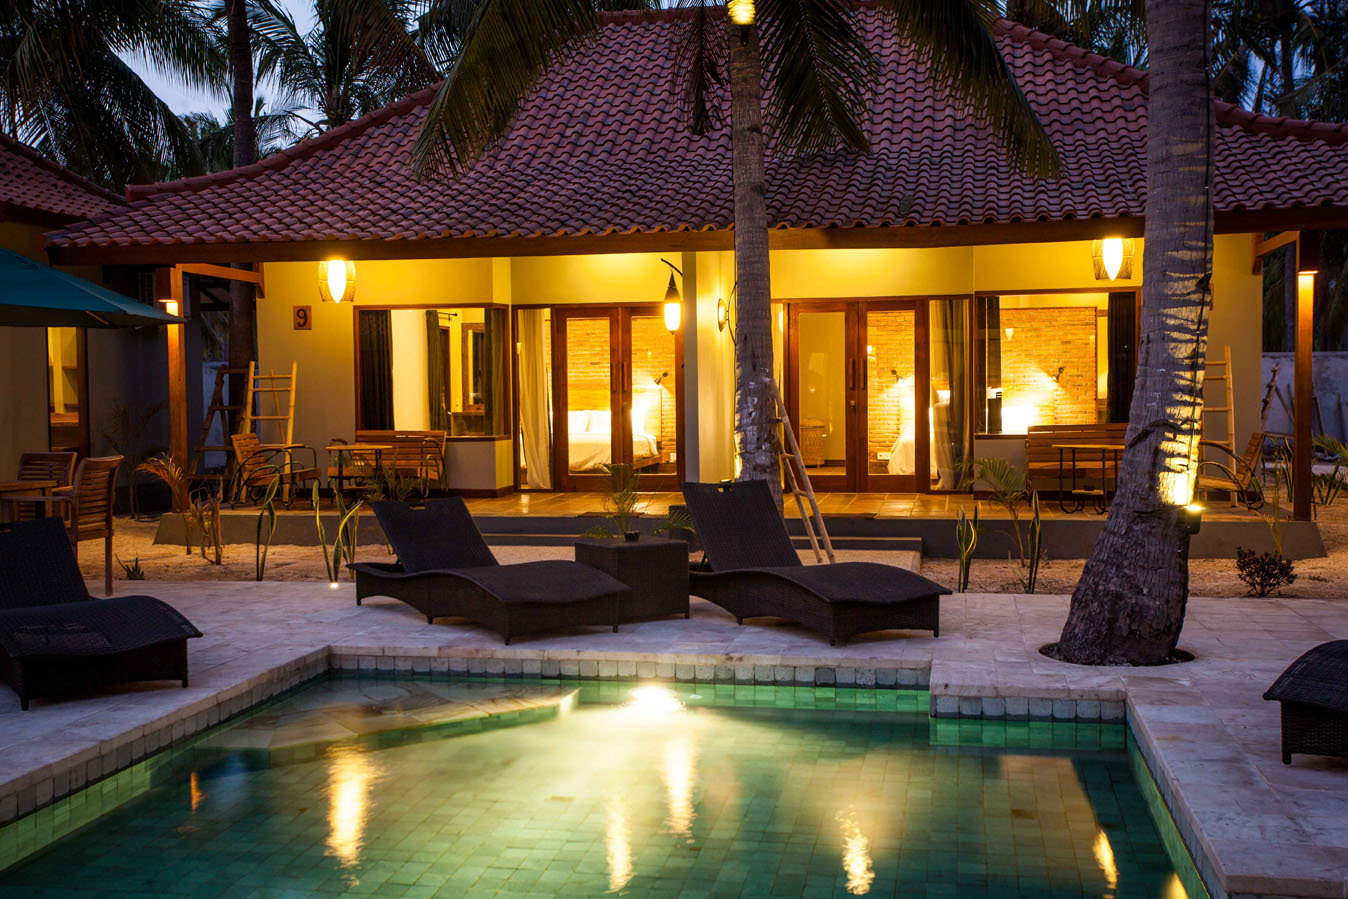 files/pictures/72_Pixel_04_Belukar_Dusk_Pool_Hotel_Resort_Villa_Rooms_Double_Twin_Family_Romantic_Tropical_Palm_Sun_Coconut_Quality_Bar_Pool_Beach_Food_Drink_Evening.jpg